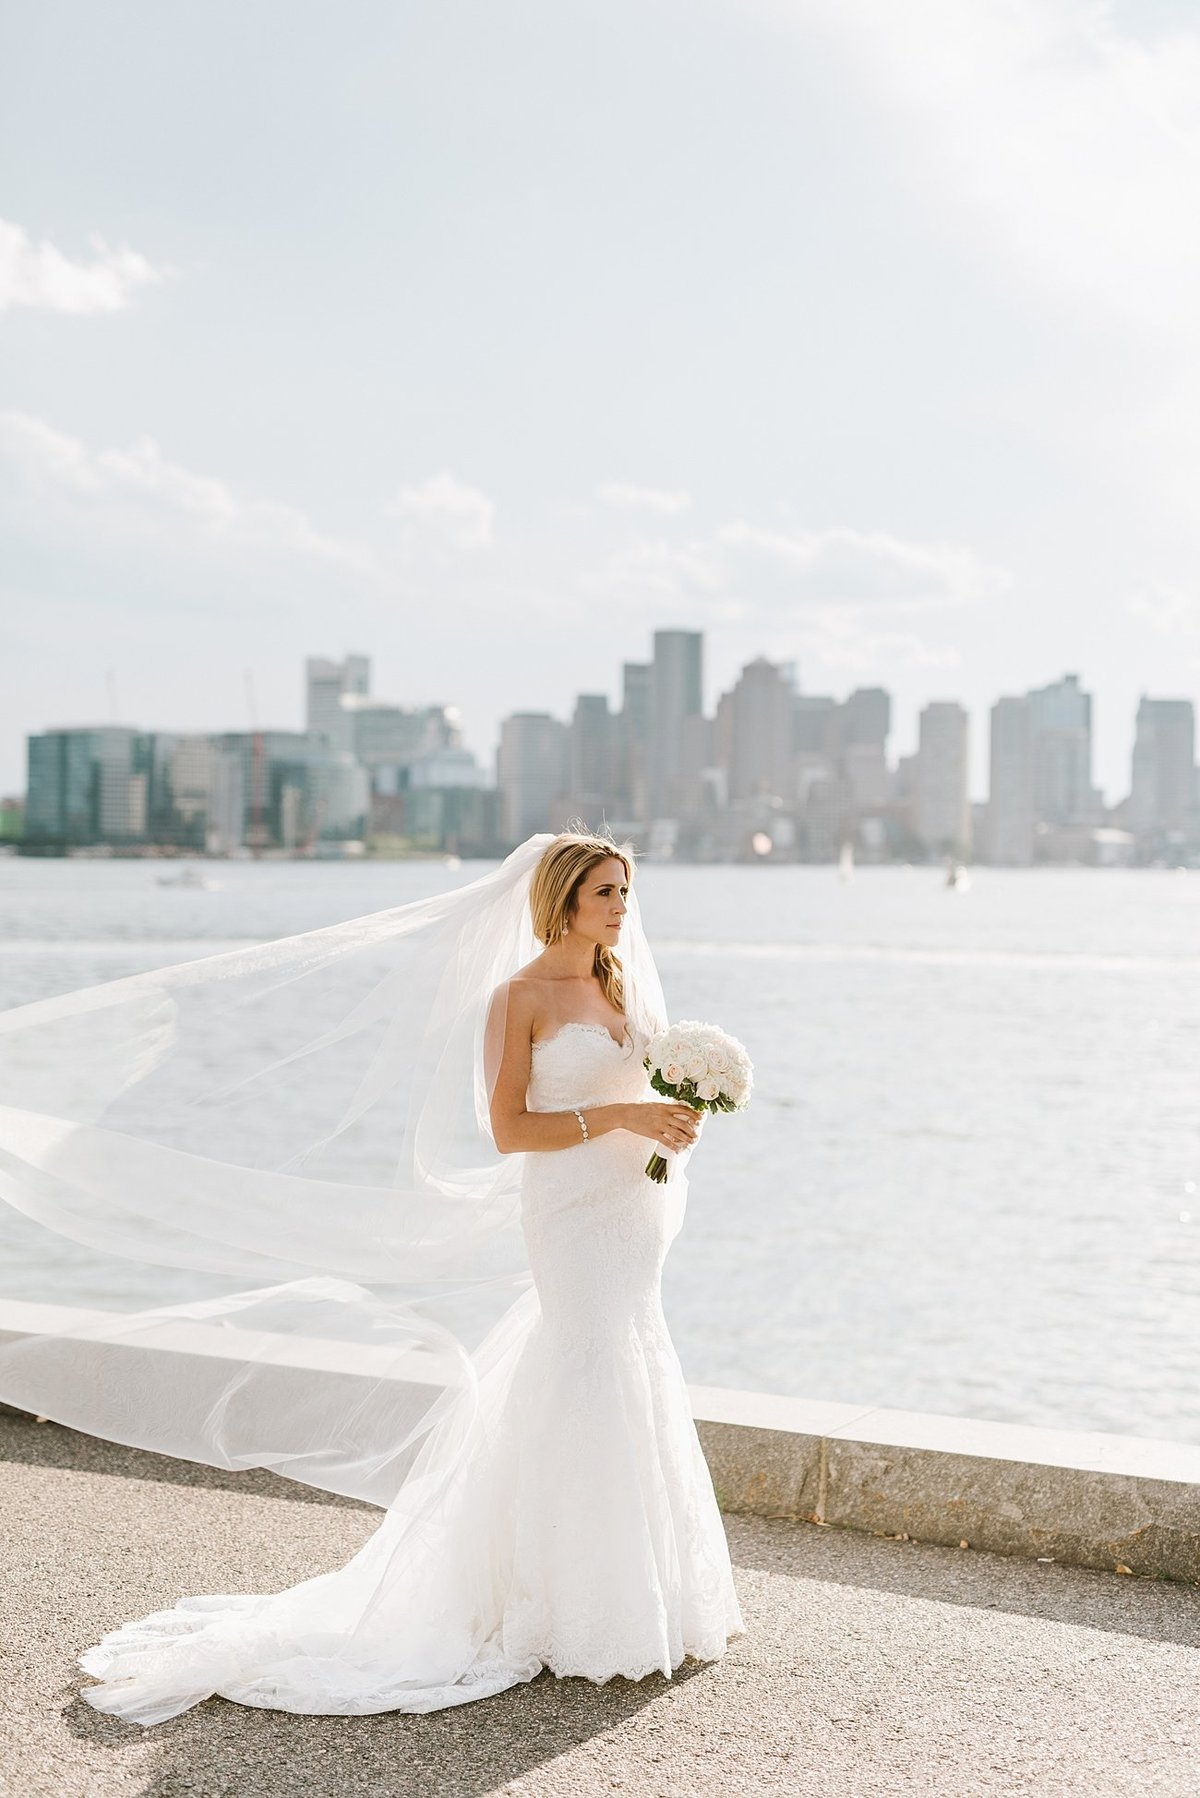 hyatt-regency-boston-harbor-hotel-wedding-photographer-photo_0016